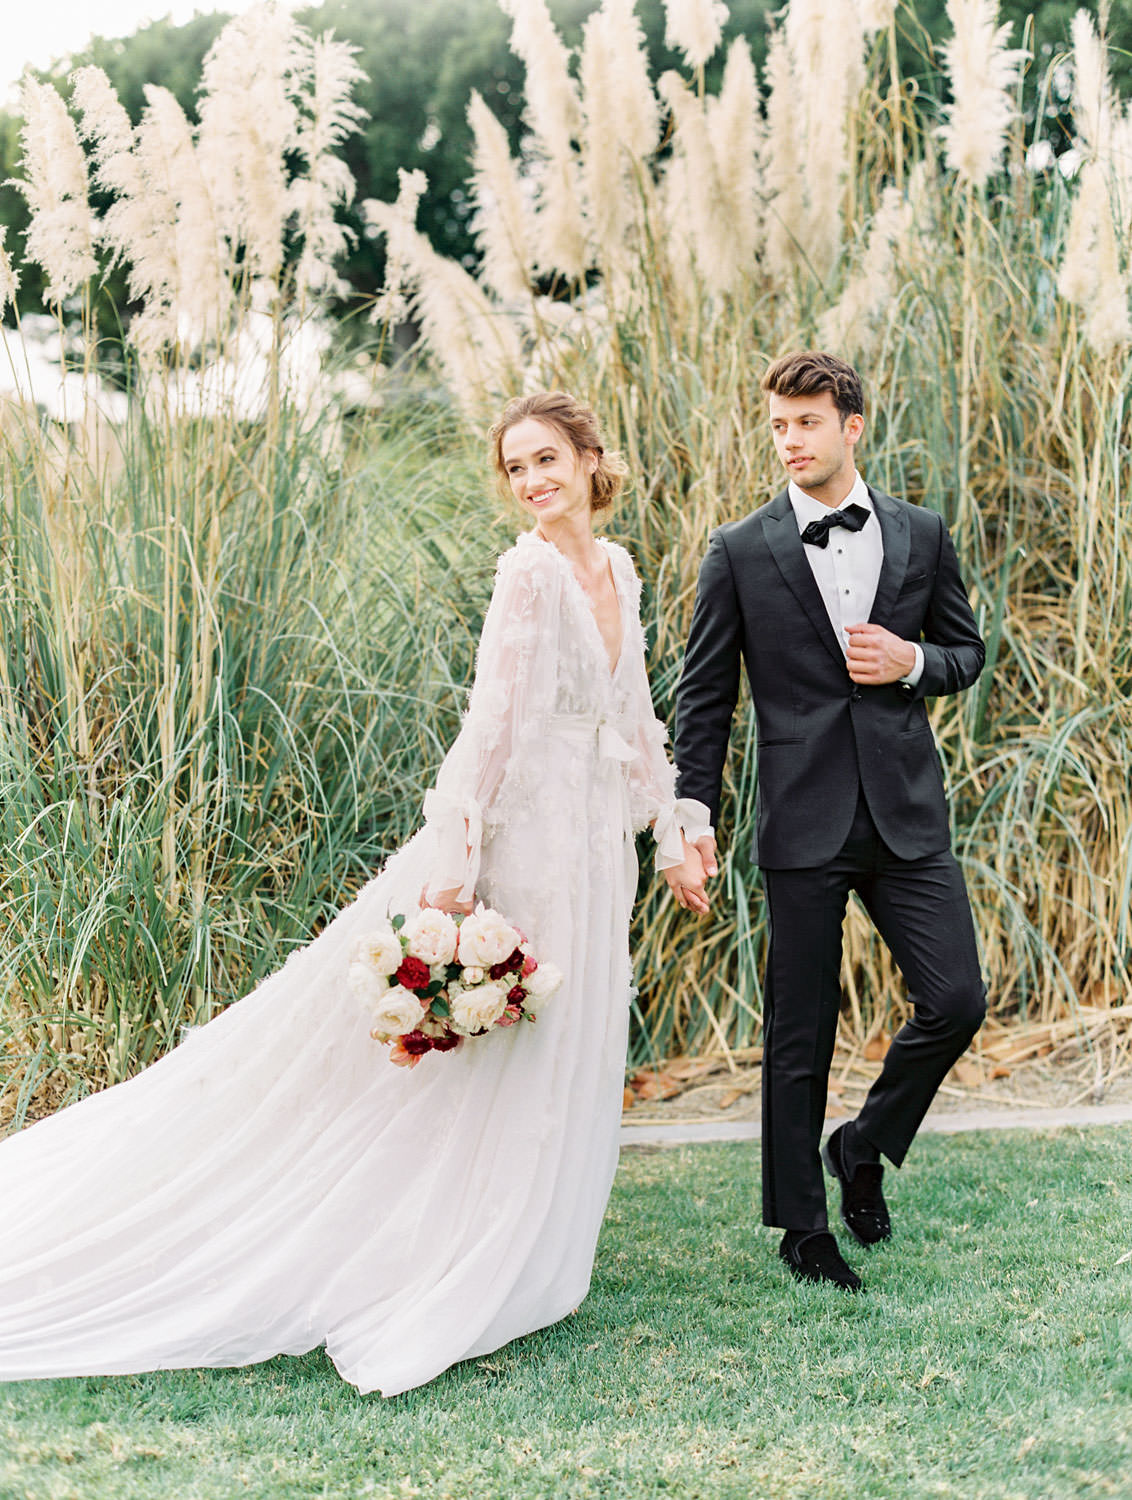 Bride in long sleeve Marchesa Poppy gown and groom in The Black Tux walking through pampas grove, Pampas Grass Wedding in San Diego on Film by Cavin Elizabeth Photography